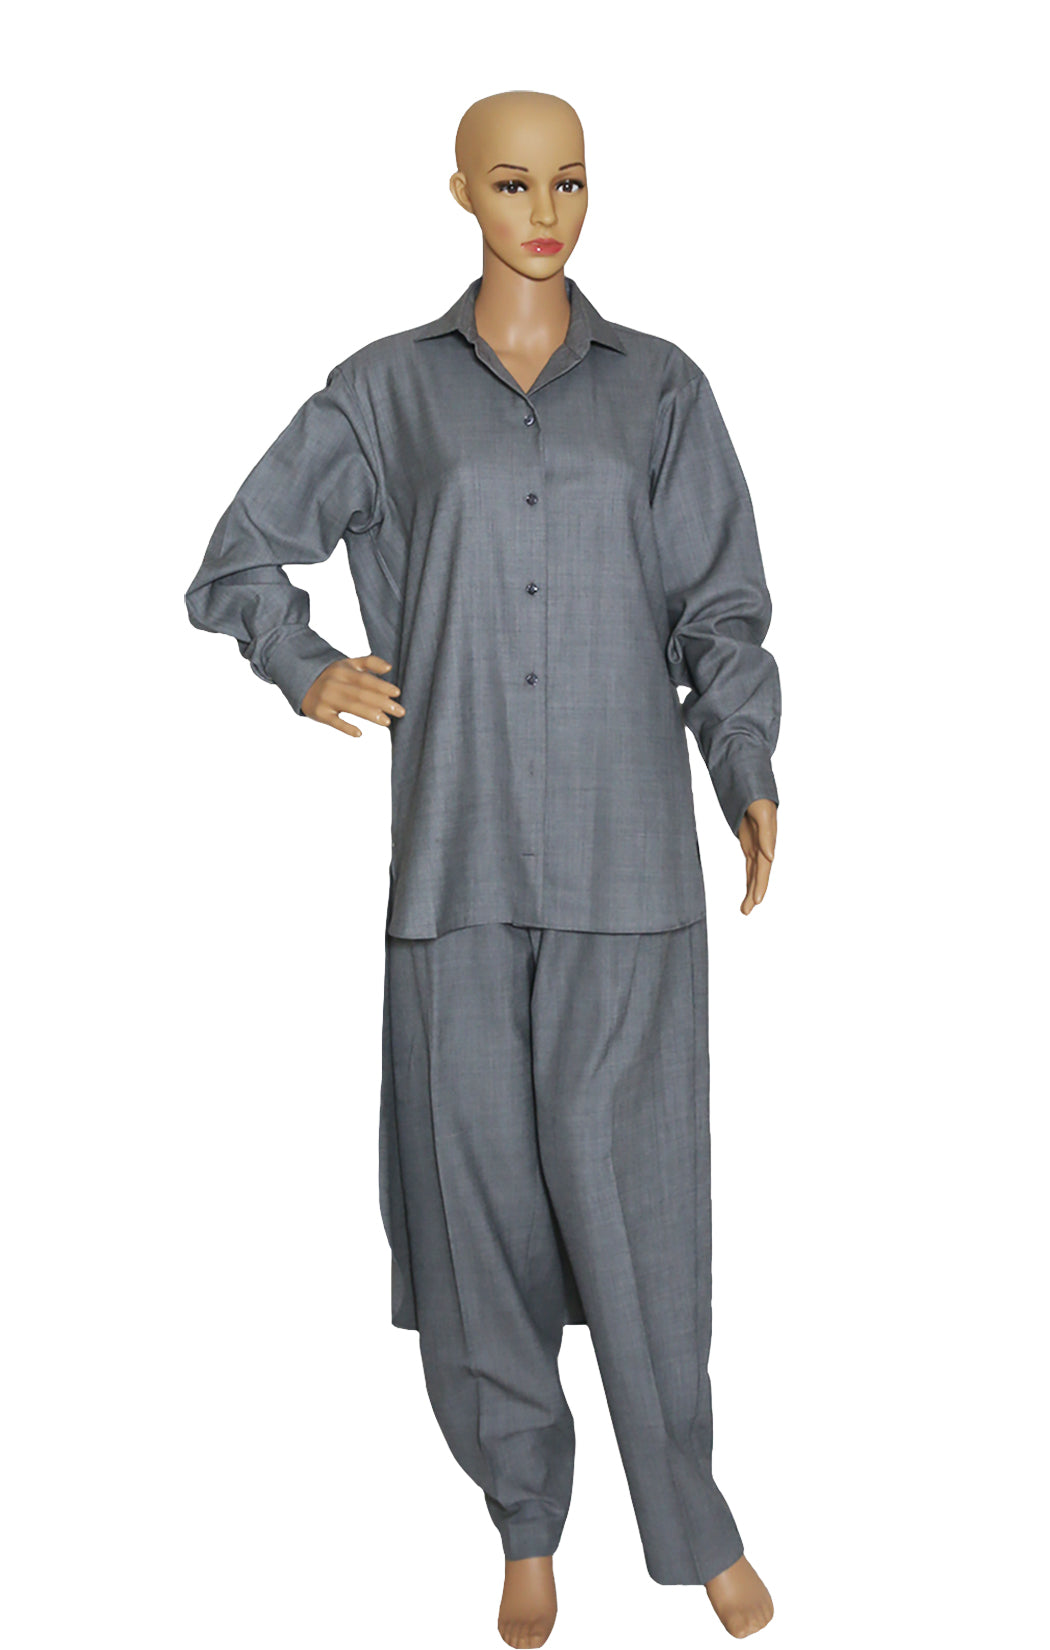 Front view of CELINE  Long Shirt Tunic with Matching Pant Shirt Size: FR 34 (US 4, runs full), Pant Size: FR 42 (US 12)